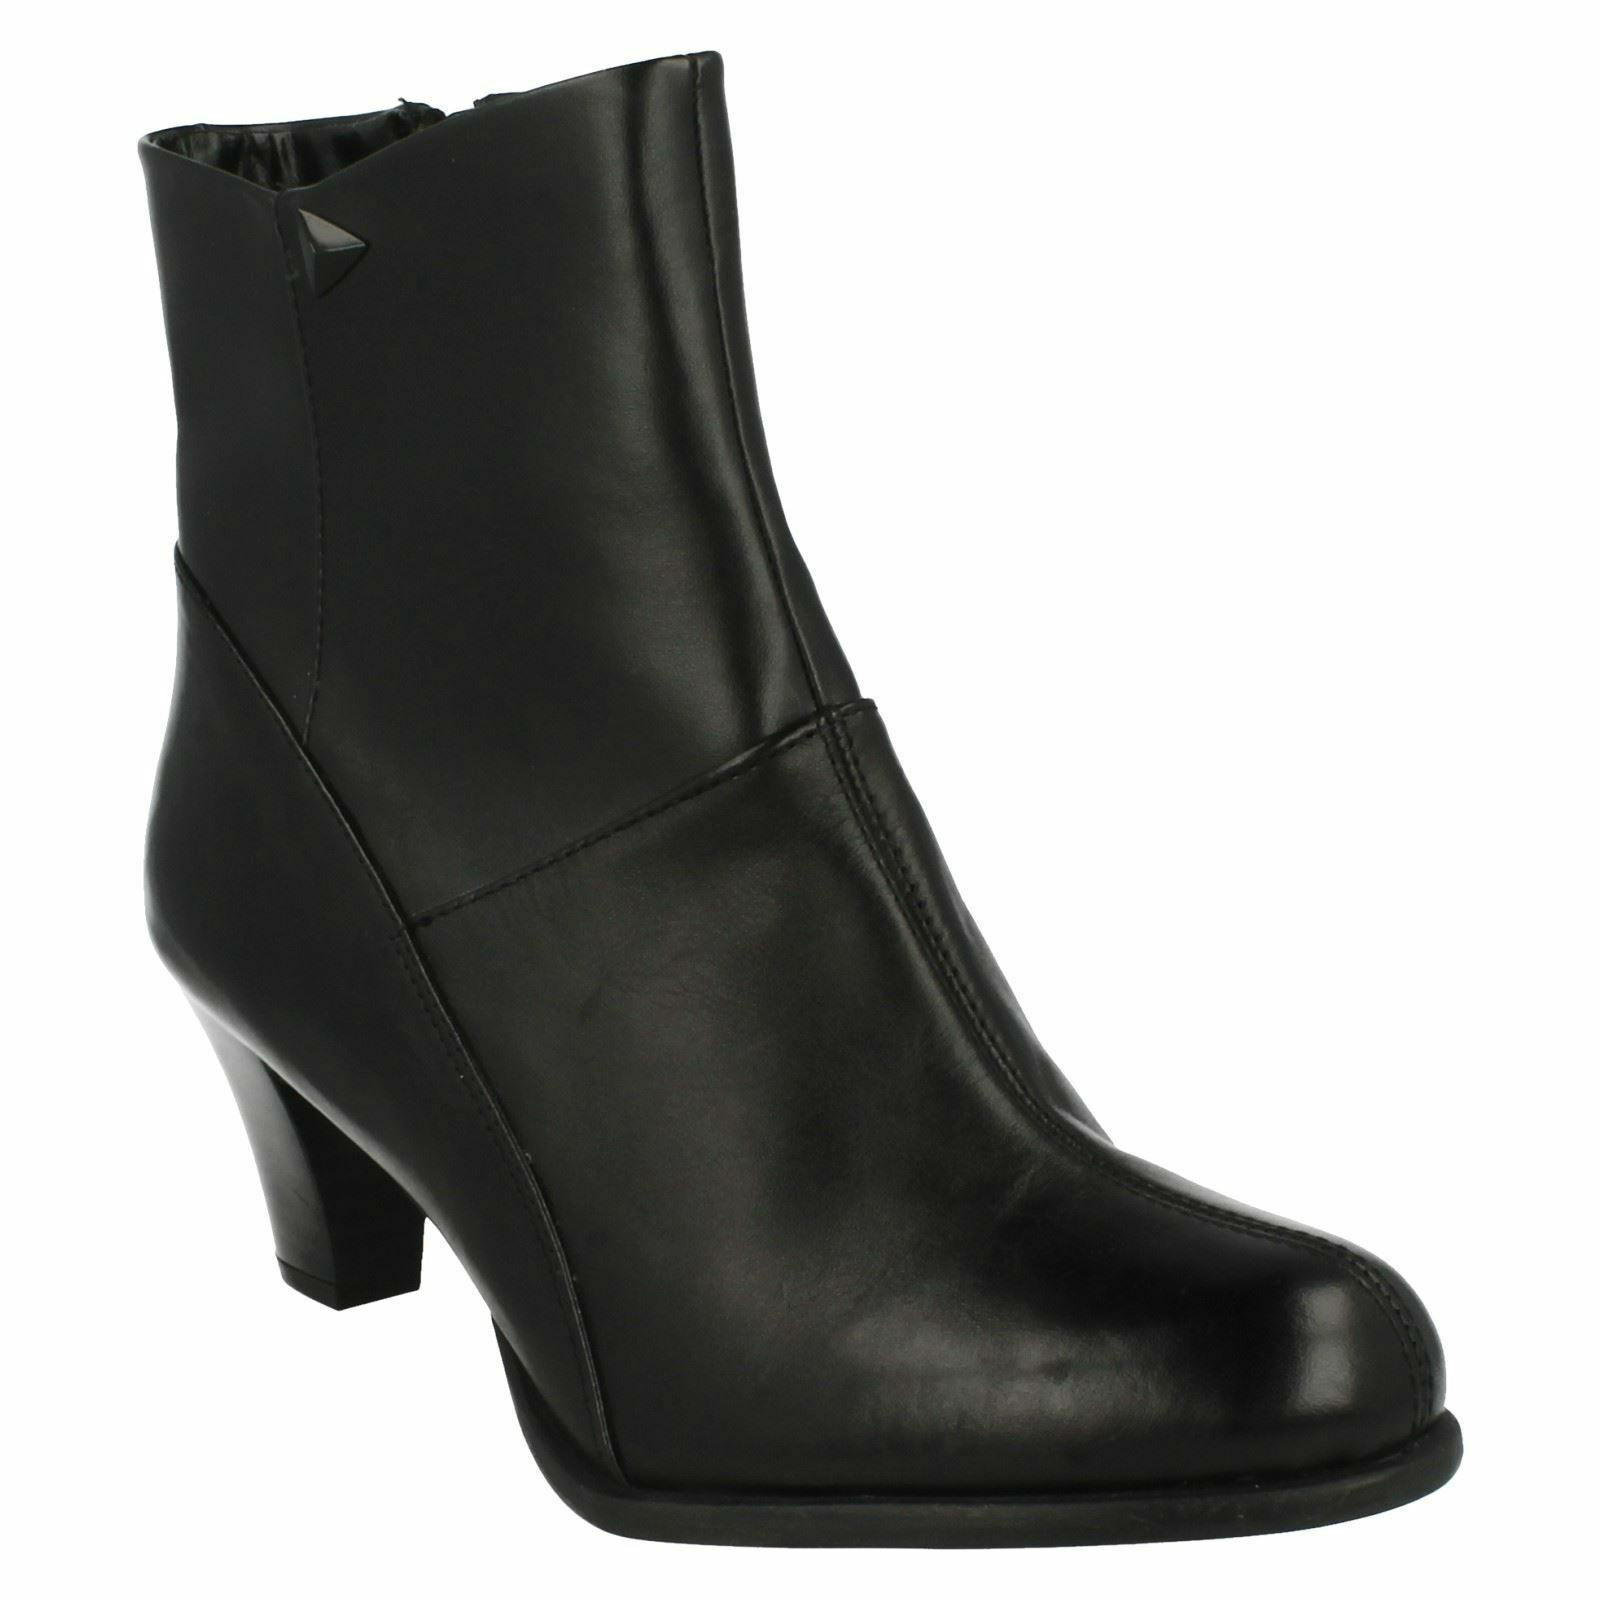 SALE LEASE PARTY LADIES CLARKS ZIP LEATHER SMART HEELED ANKLE BOOTS